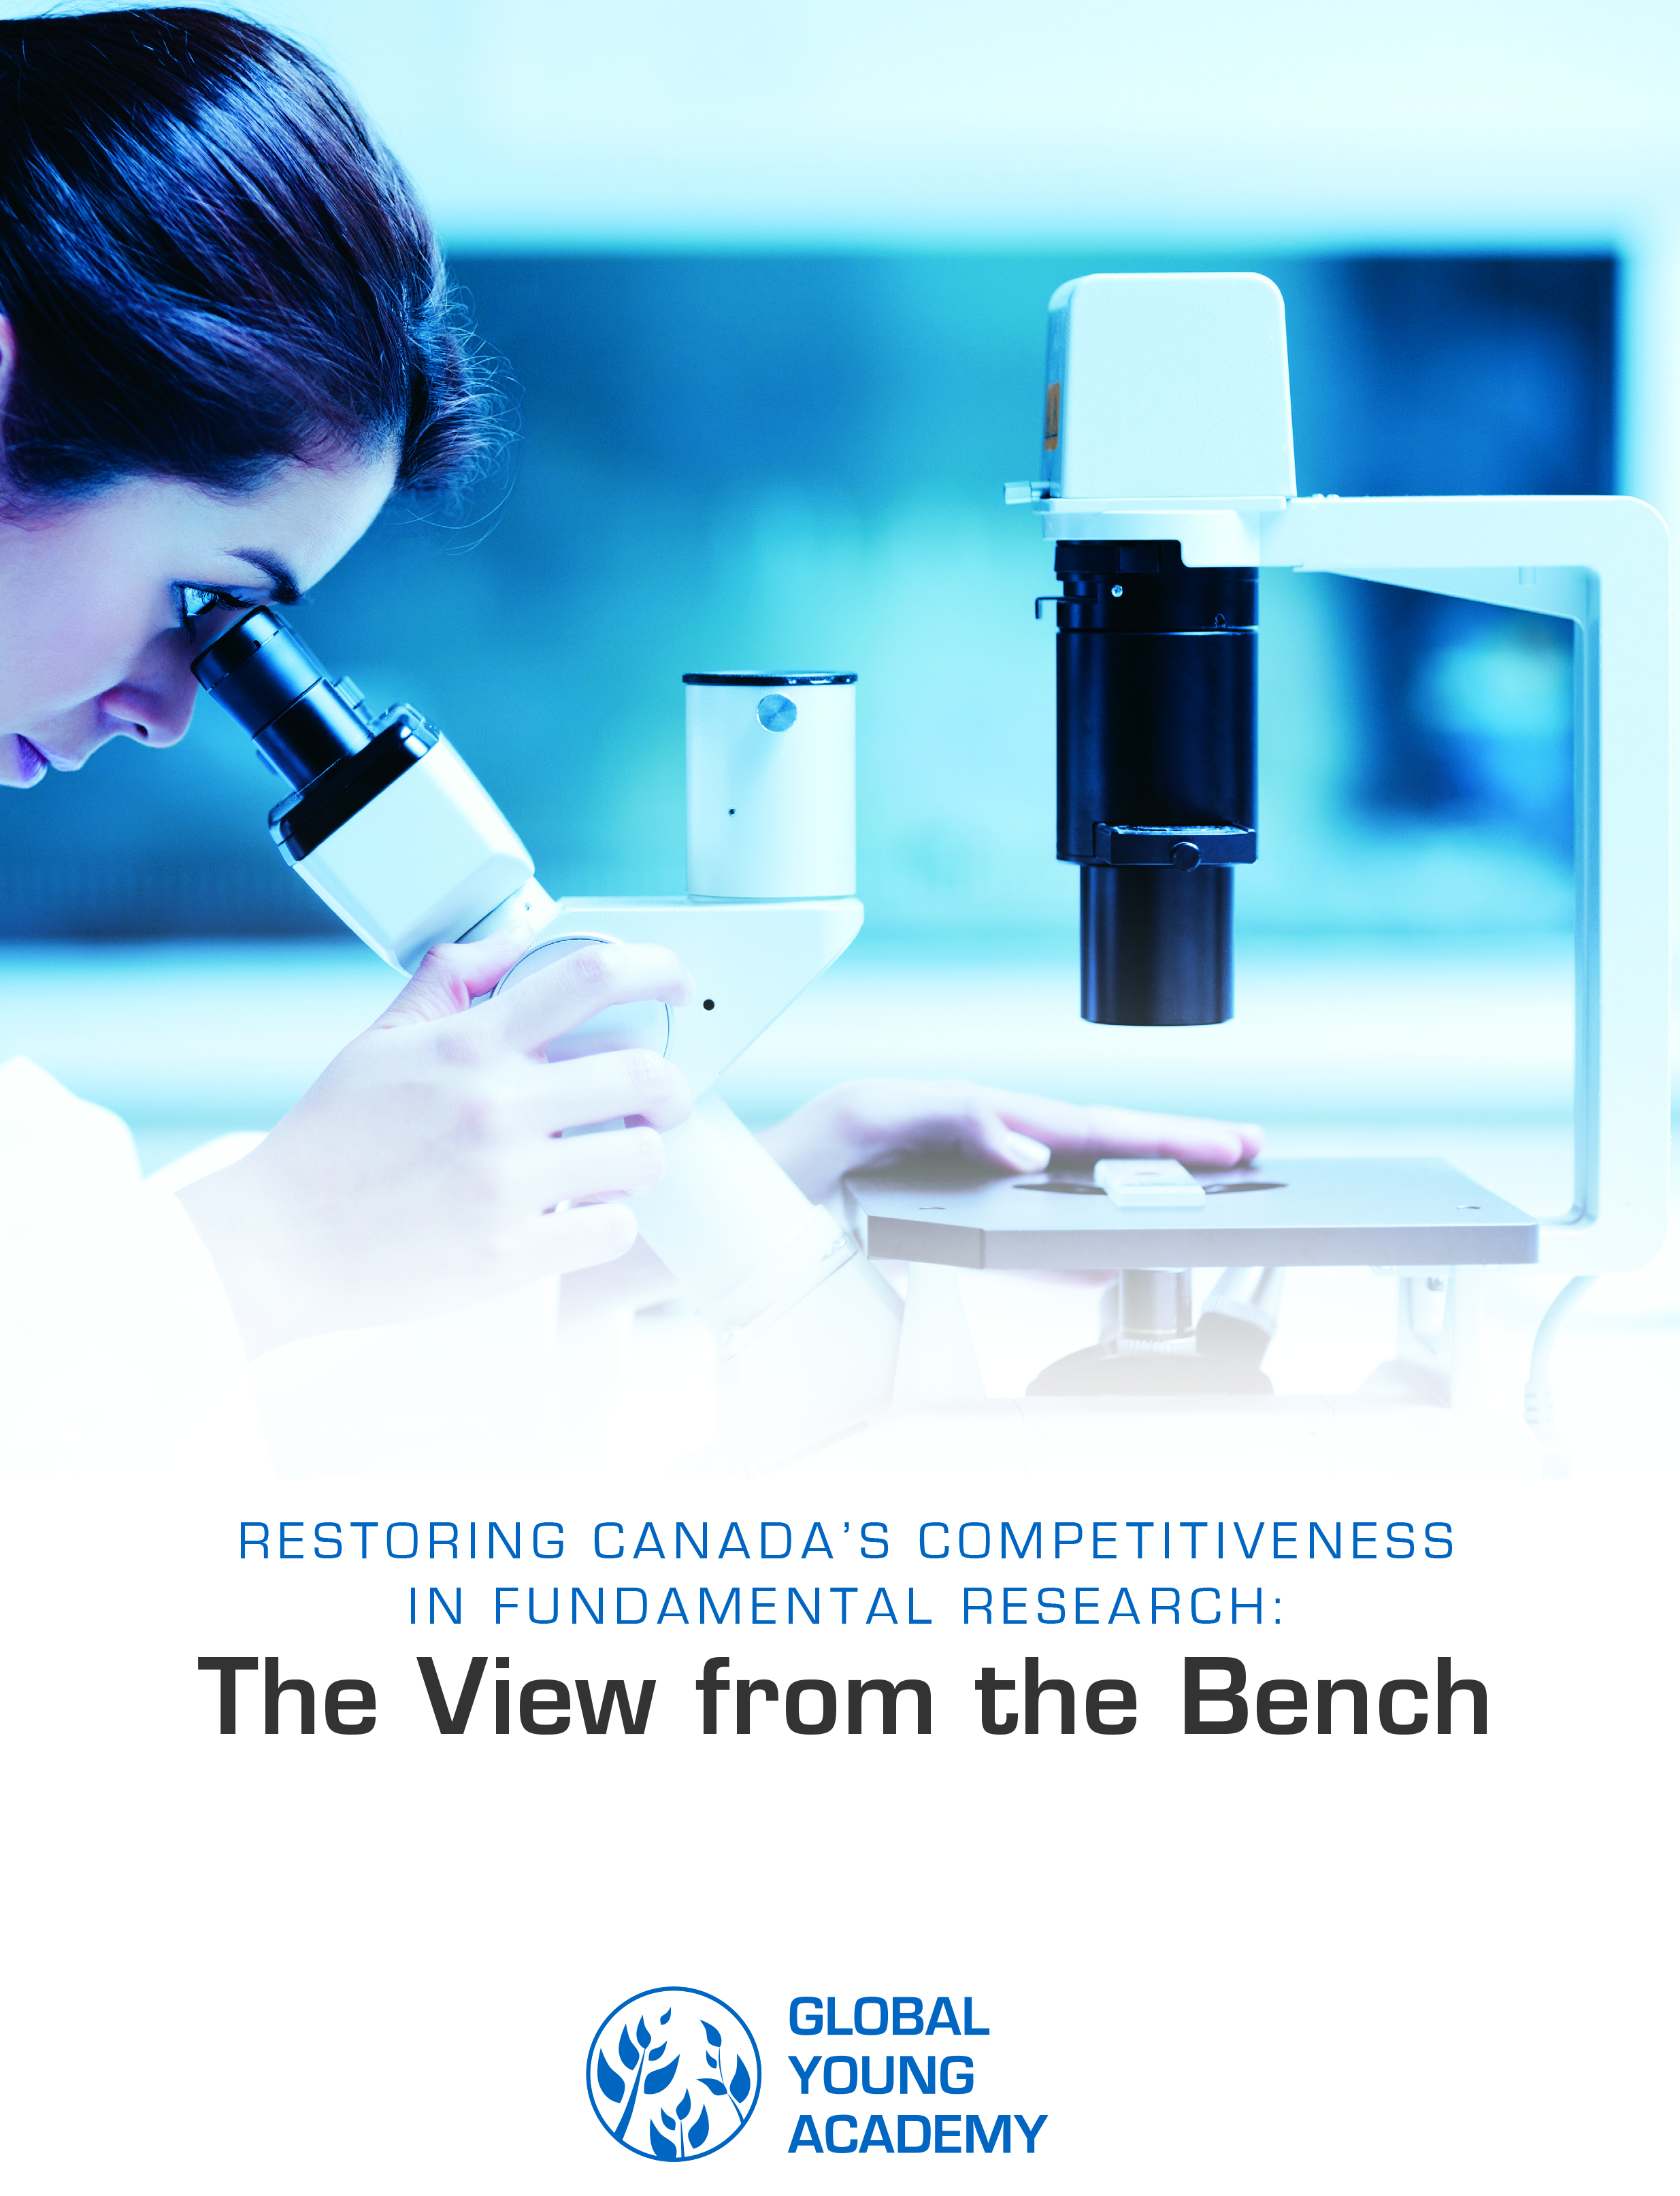 Restoring Canada's Competitiveness in Fundamental Research